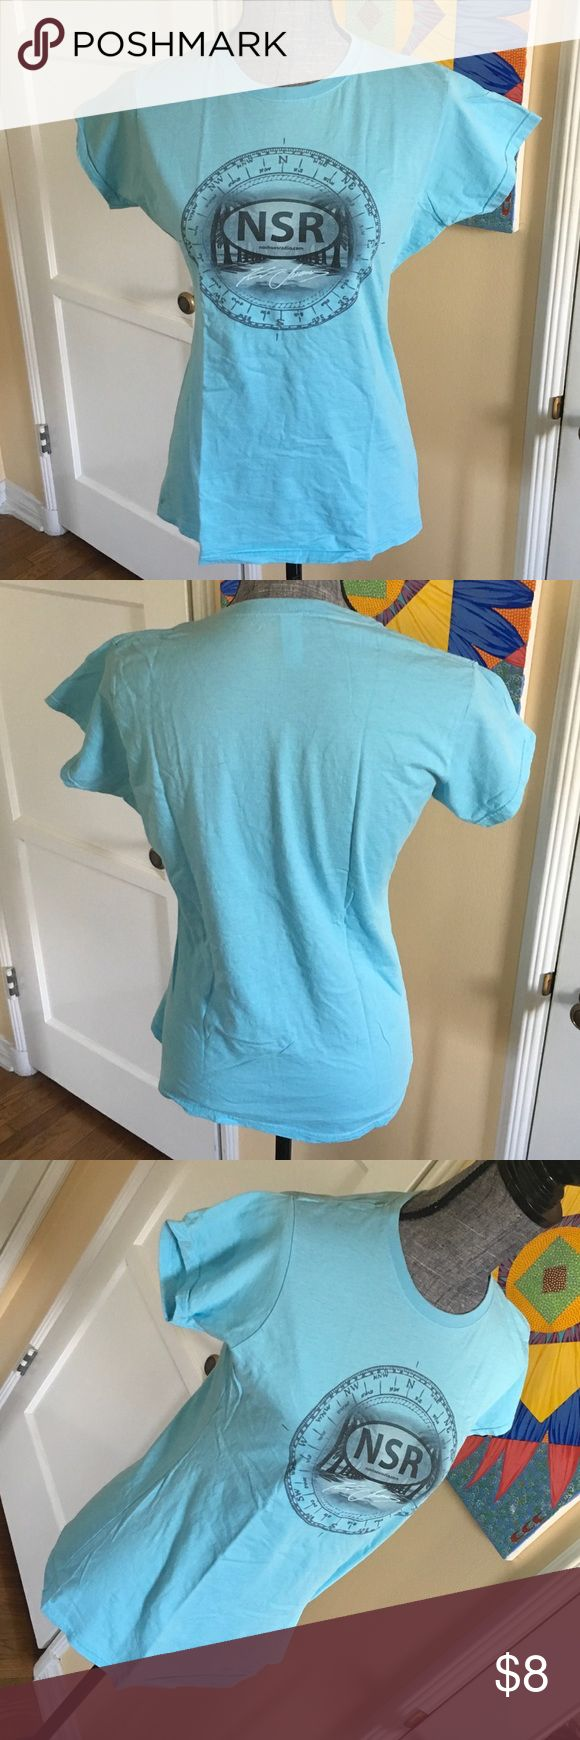 Great Summer Tee 🤠☀️🌼 Kenny Chesney's NSR (no shoes radio) tee shirt. Great condition for that Kenny Chesney fan. Unique Tee Tops Tees - Short Sleeve